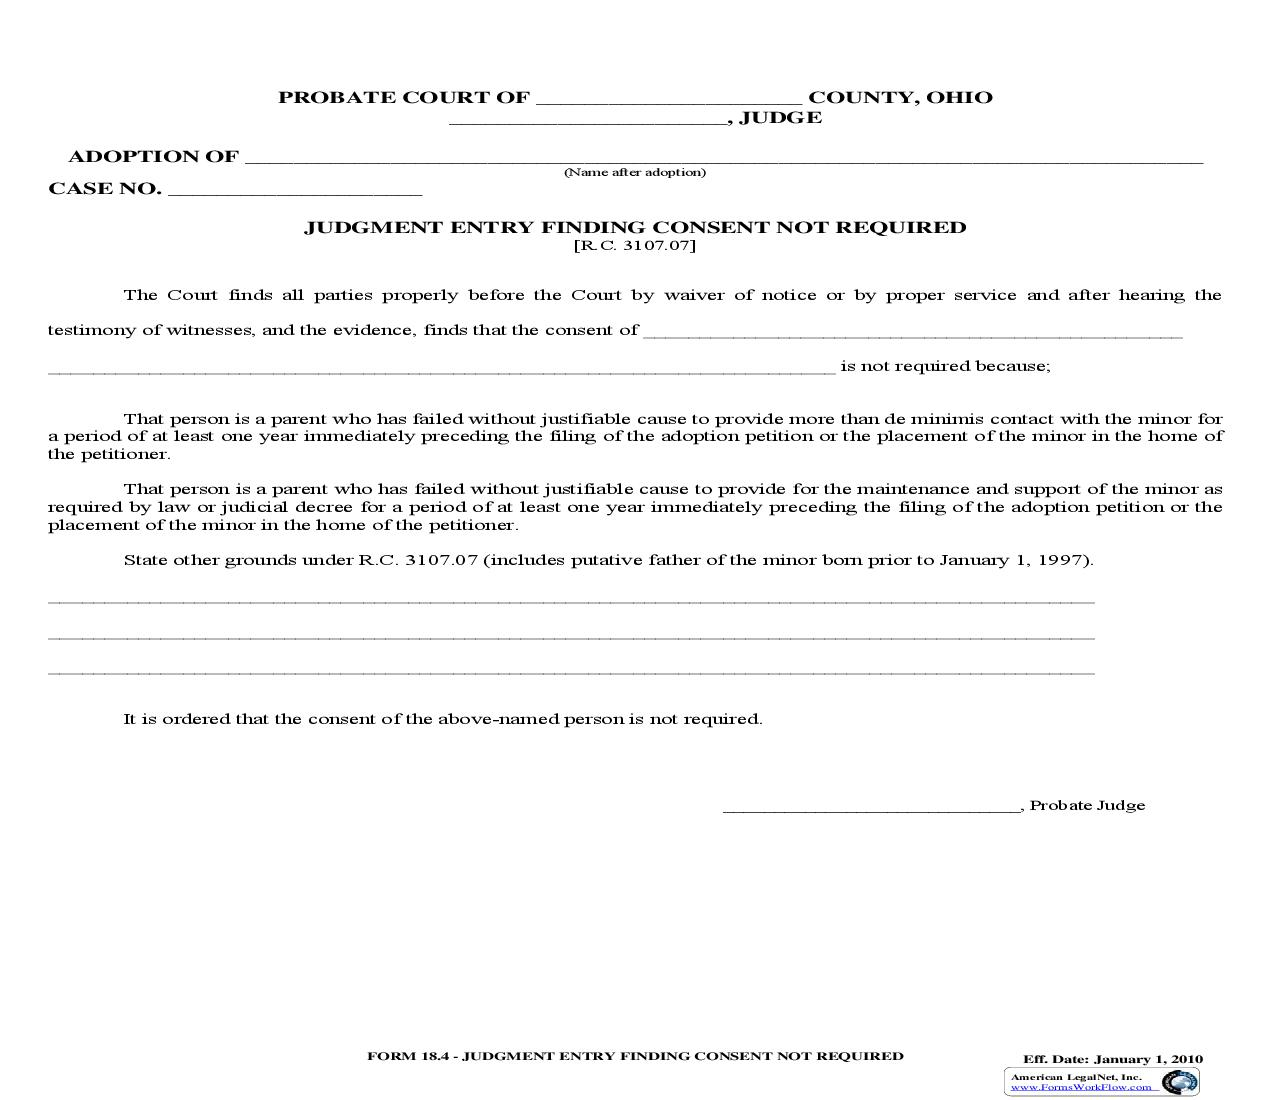 Judgment Entry Finding Consent Not Required {18.4} | Pdf Fpdf Doc Docx | Ohio